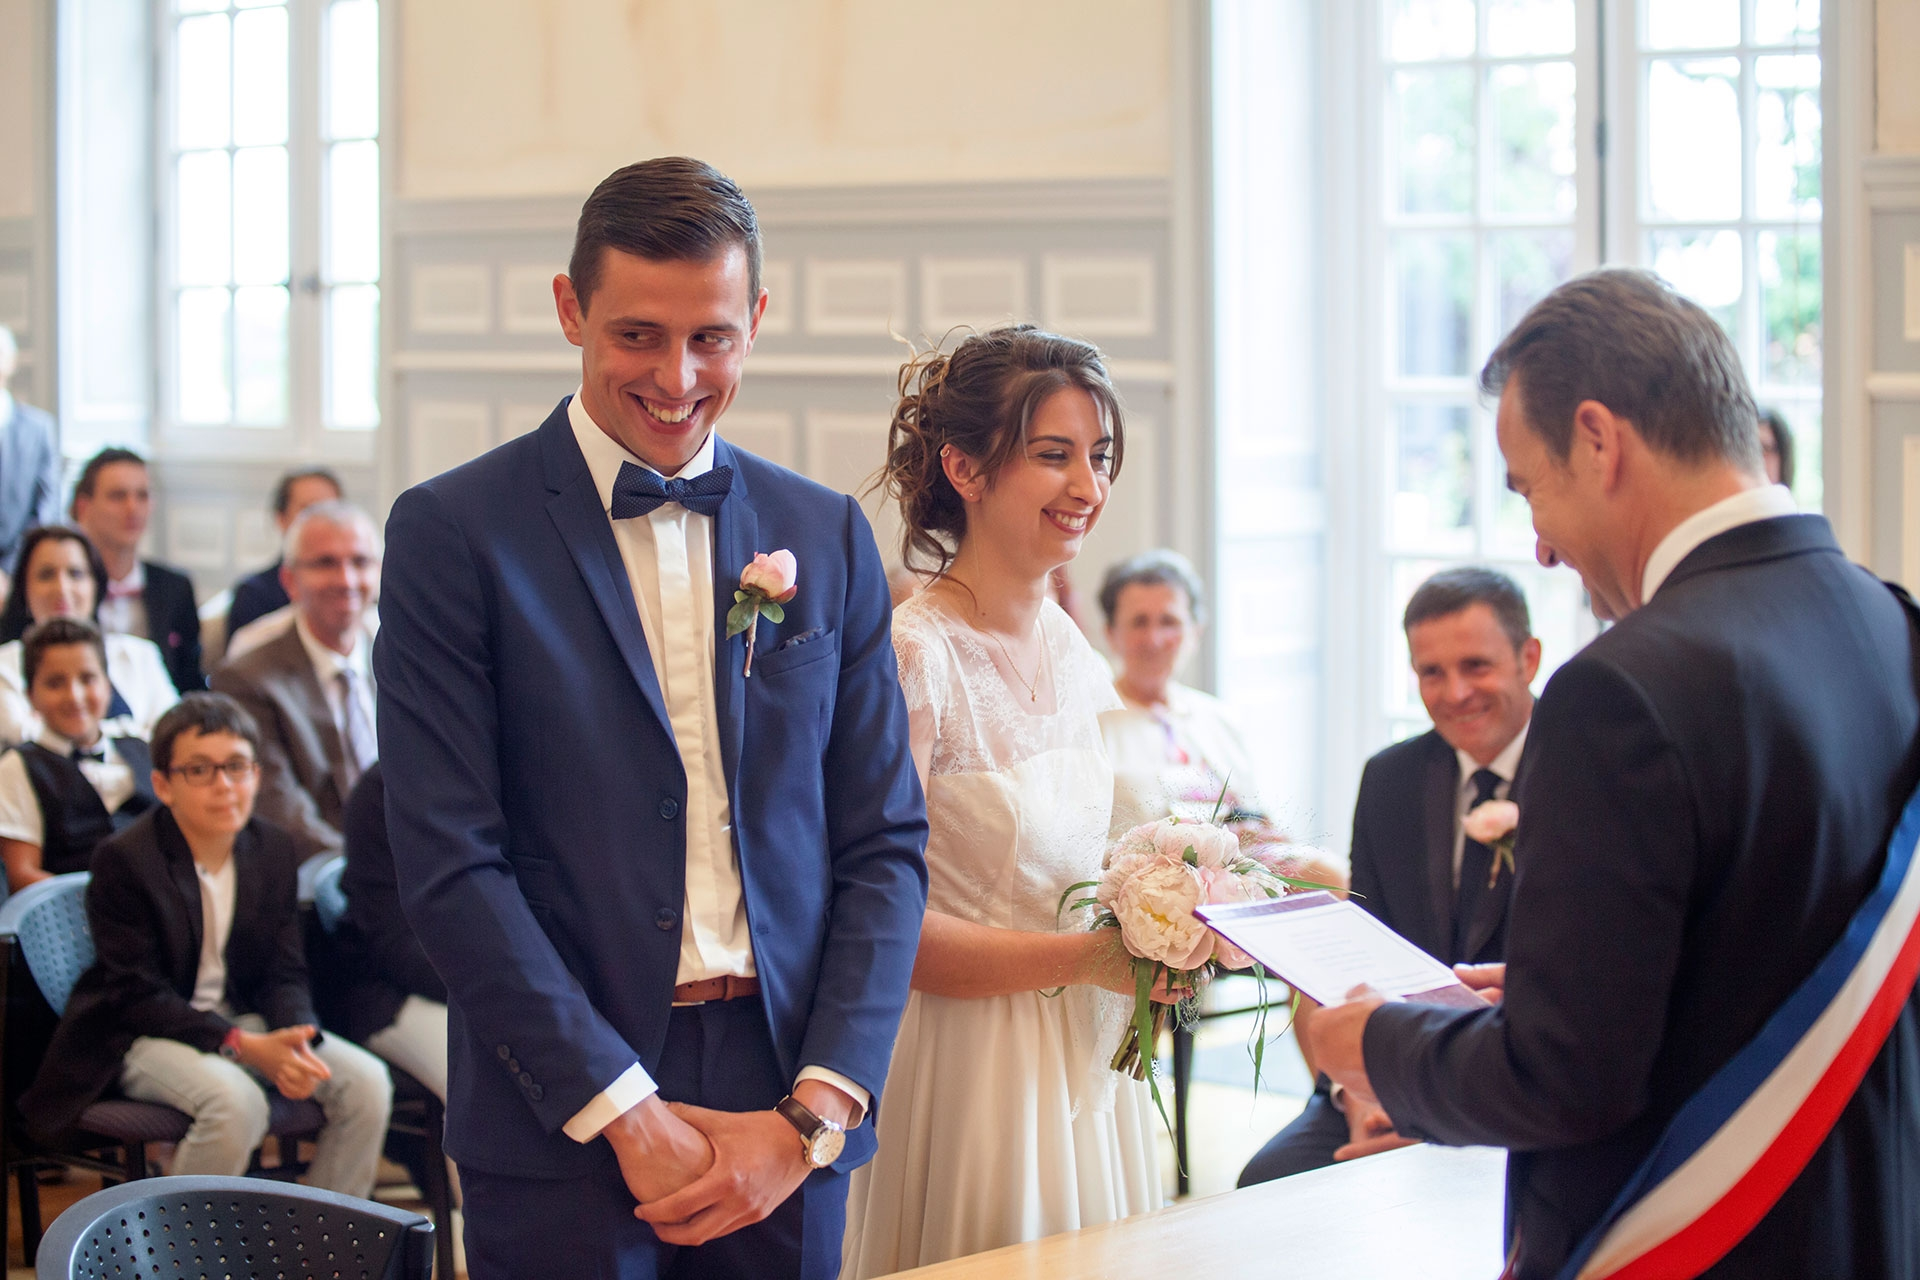 particuliers-evenements-mariages-oui-clementine&alexandre-24